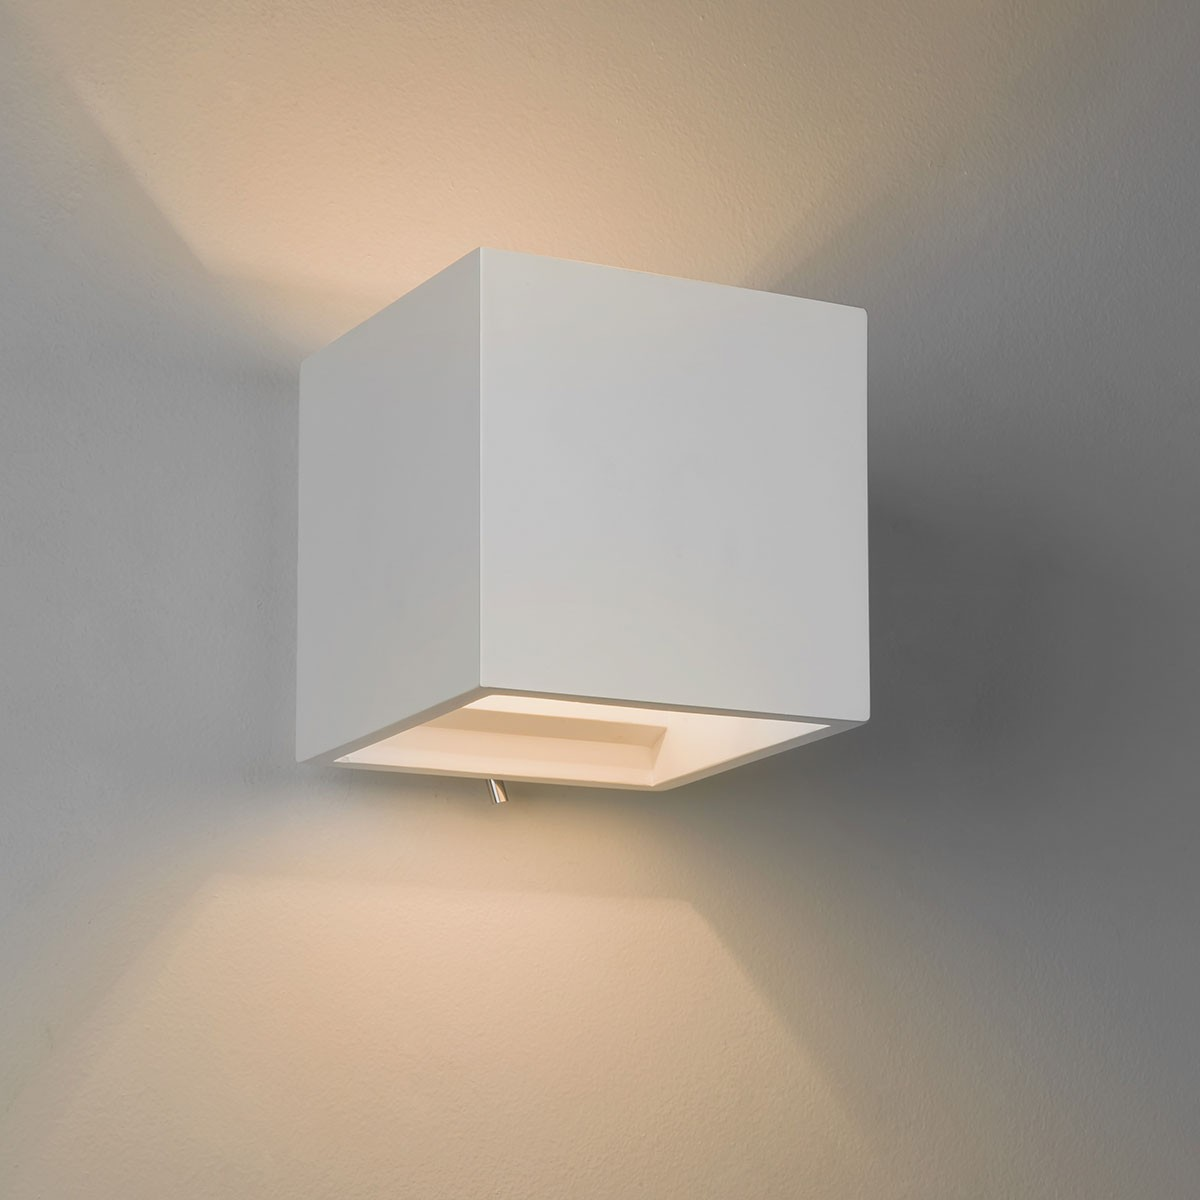 Astro pienza 140 switched plaster wall light at uk electrical supplies astro pienza 140 switched plaster wall light aloadofball Gallery